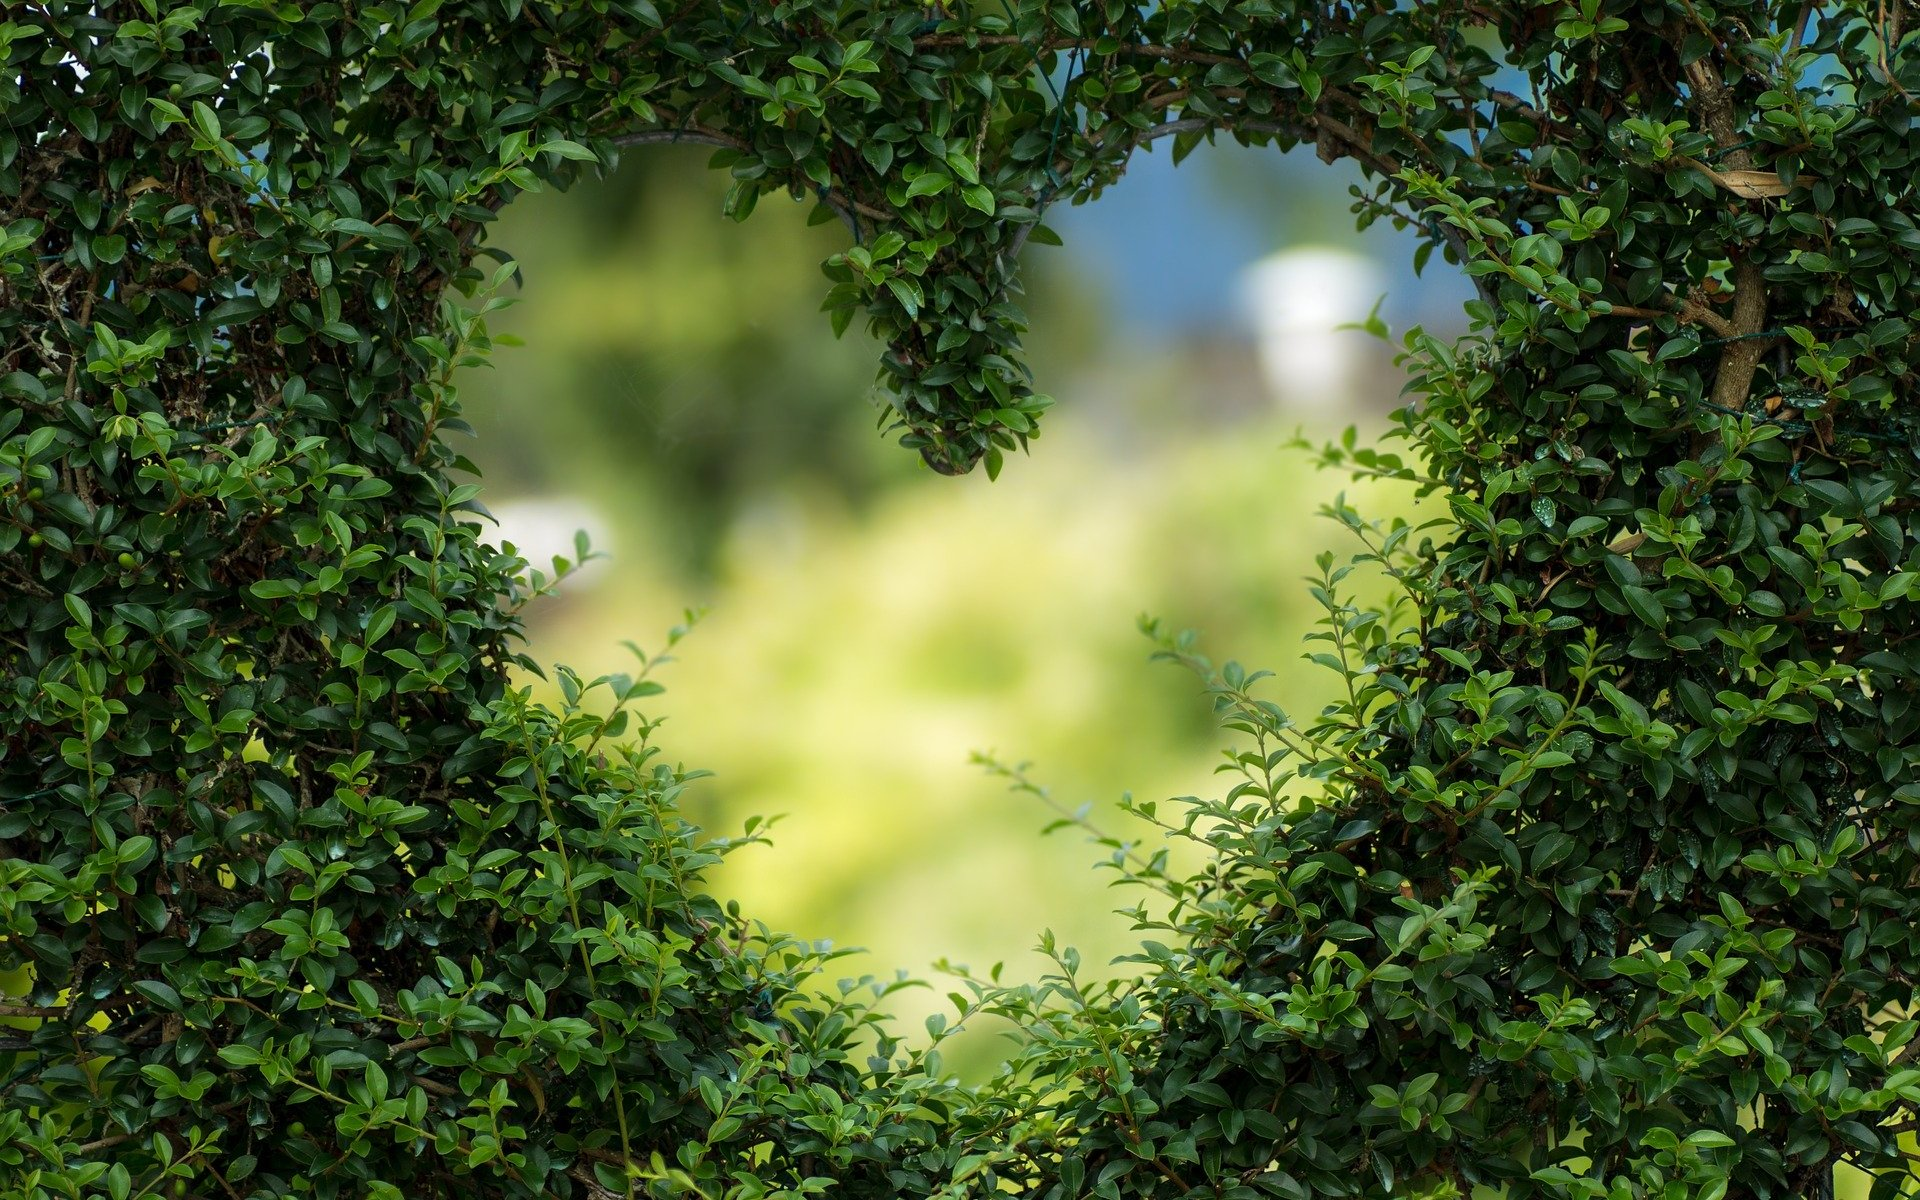 Heart sign through green bush outside